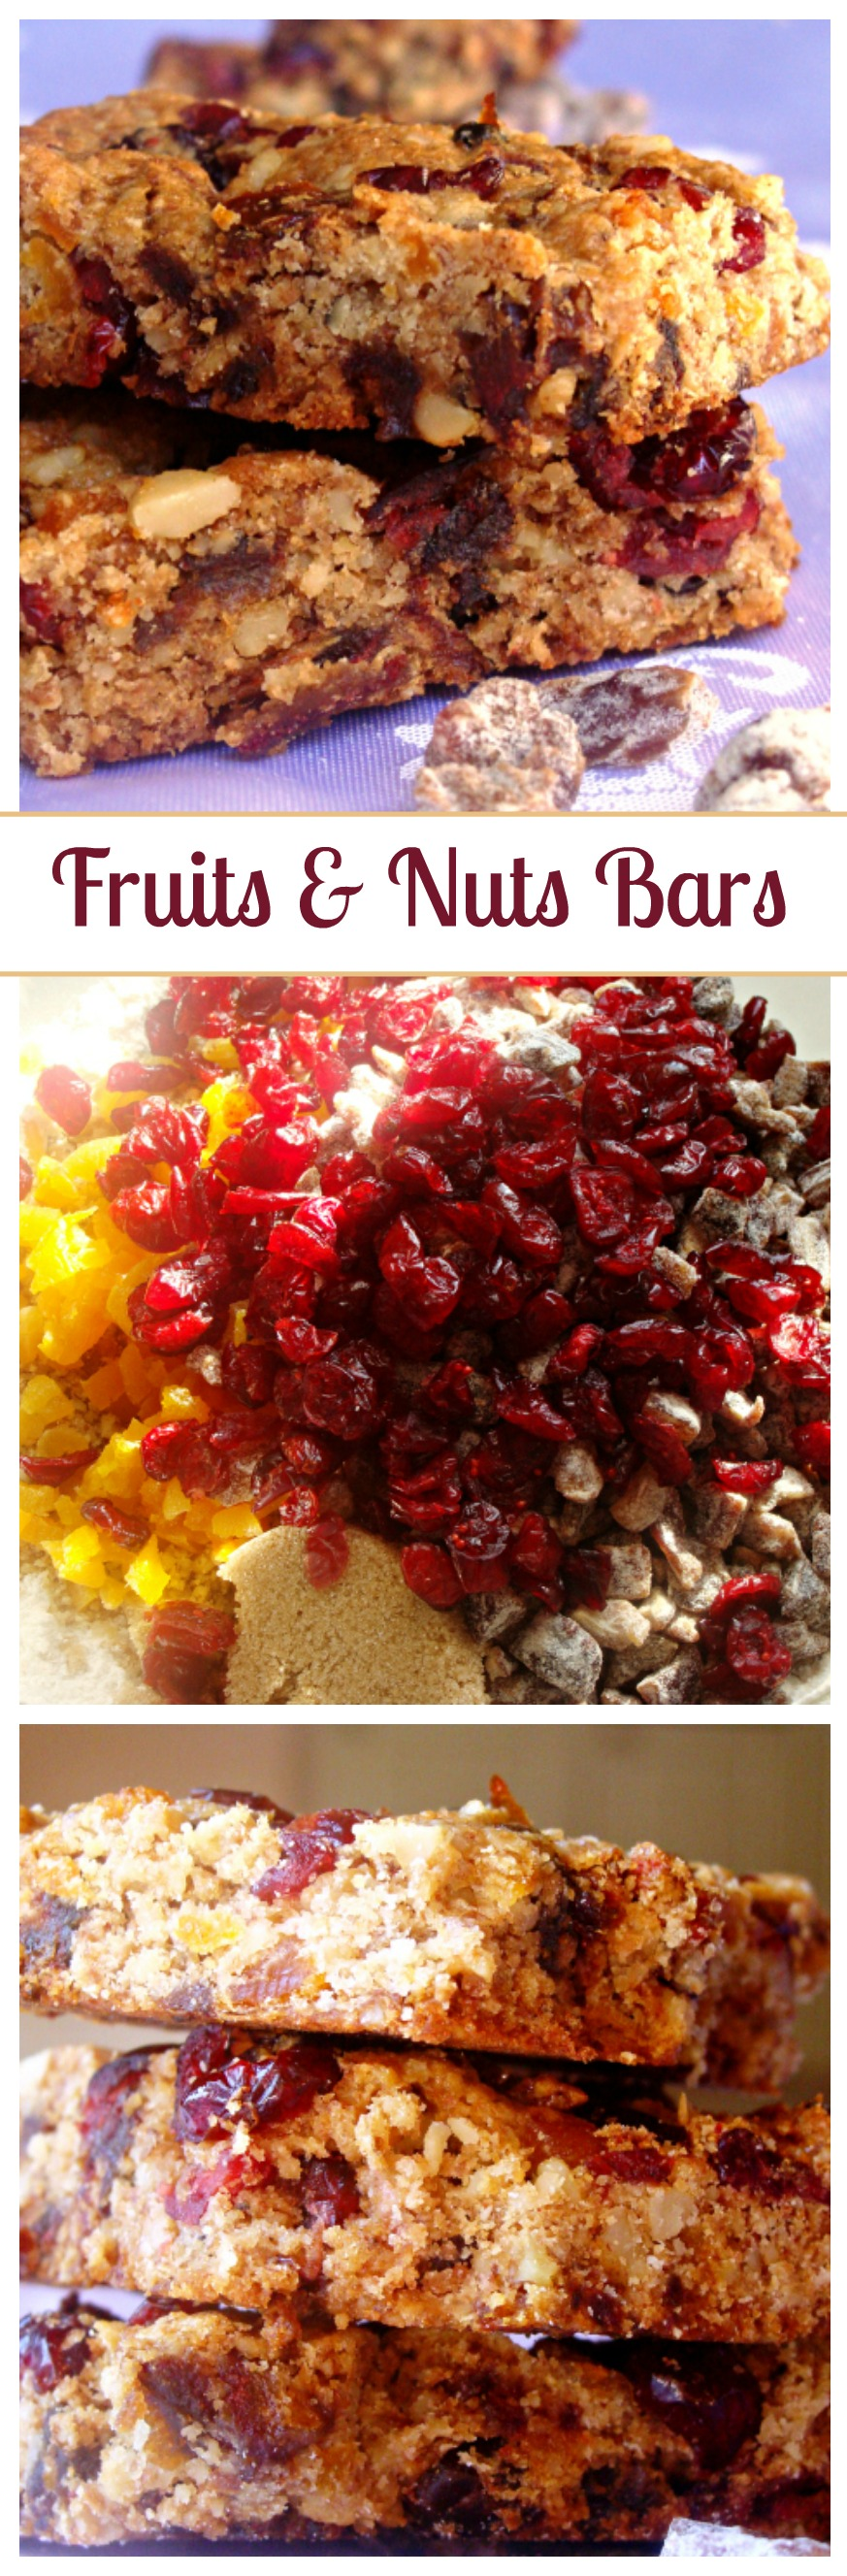 Fruit And Nut Bars Healthy And Delicious Breakfast Bars Loaded With Dried Fruits And Walnuts Breakfast Bars Healthy Fruit And Nut Bars Breakfast Bars Recipe